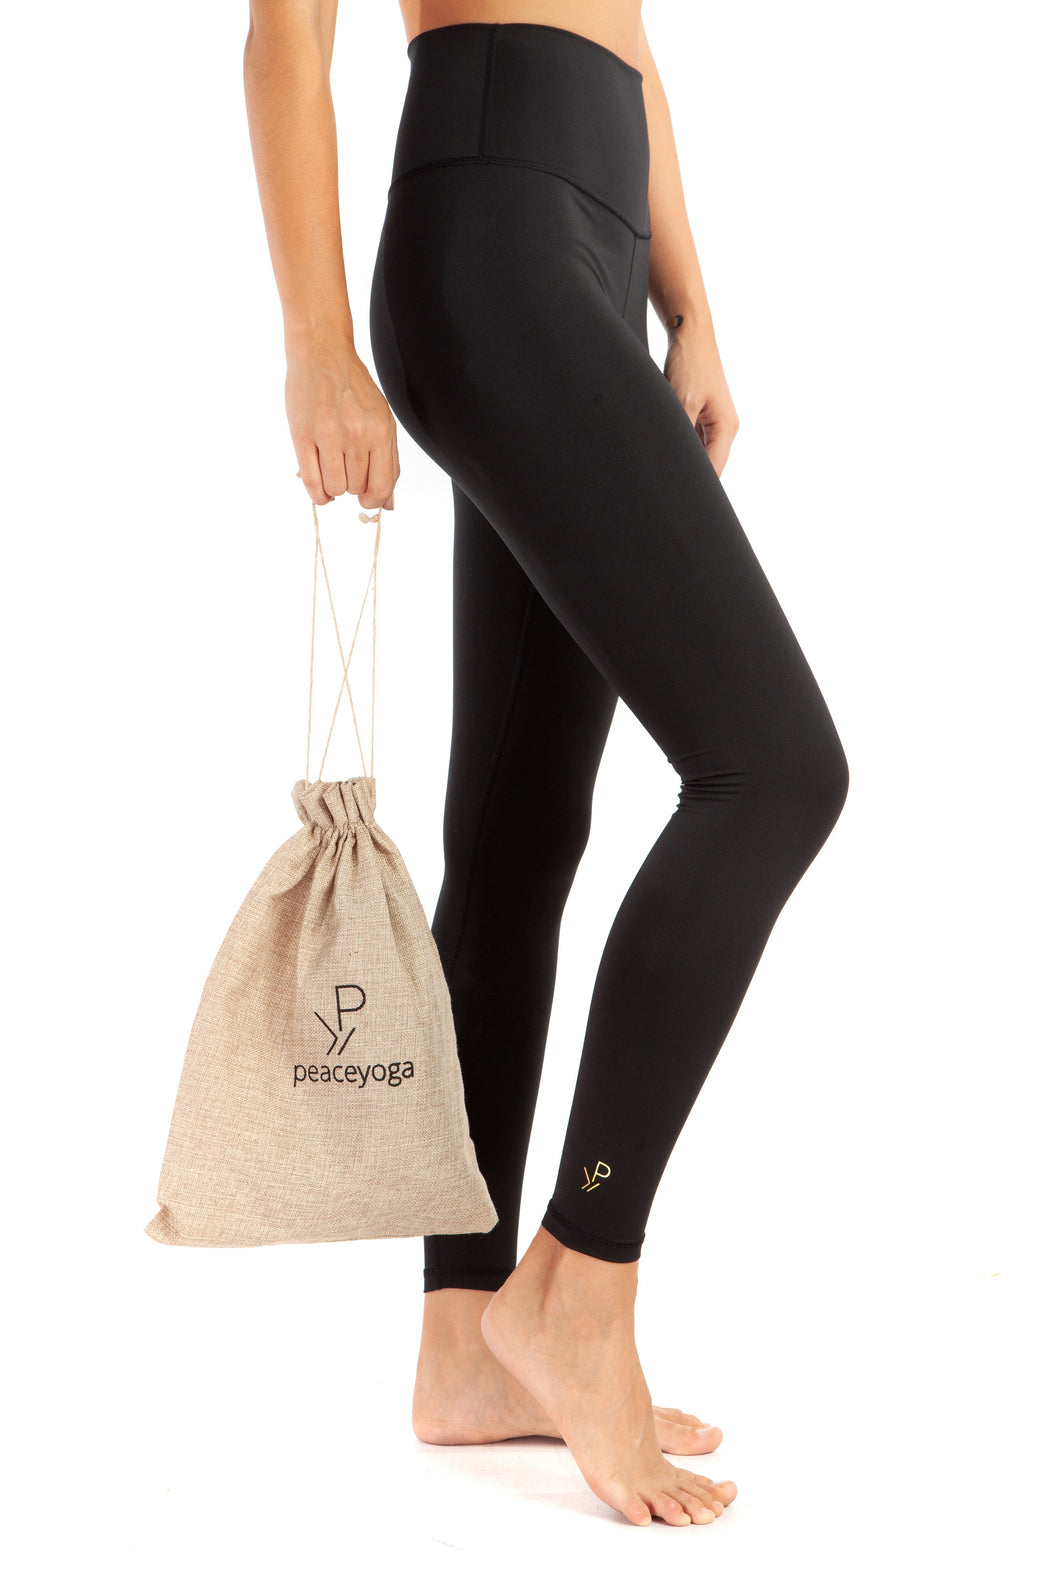 PeaceYoga Recycled Fabric Leggings